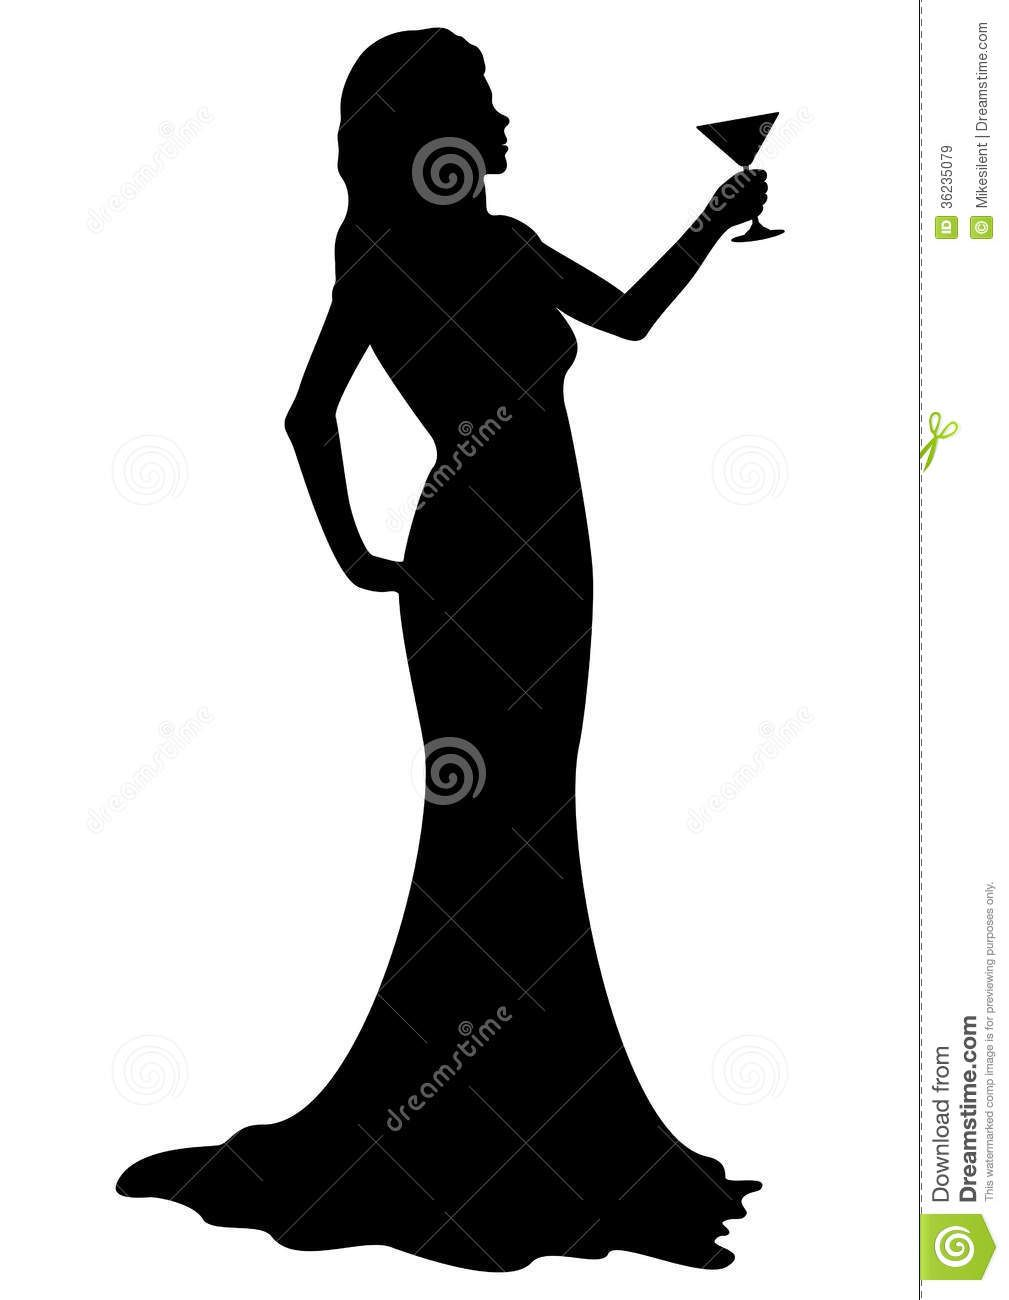 Silhouette girl with cocktail glass | silhouettes ...